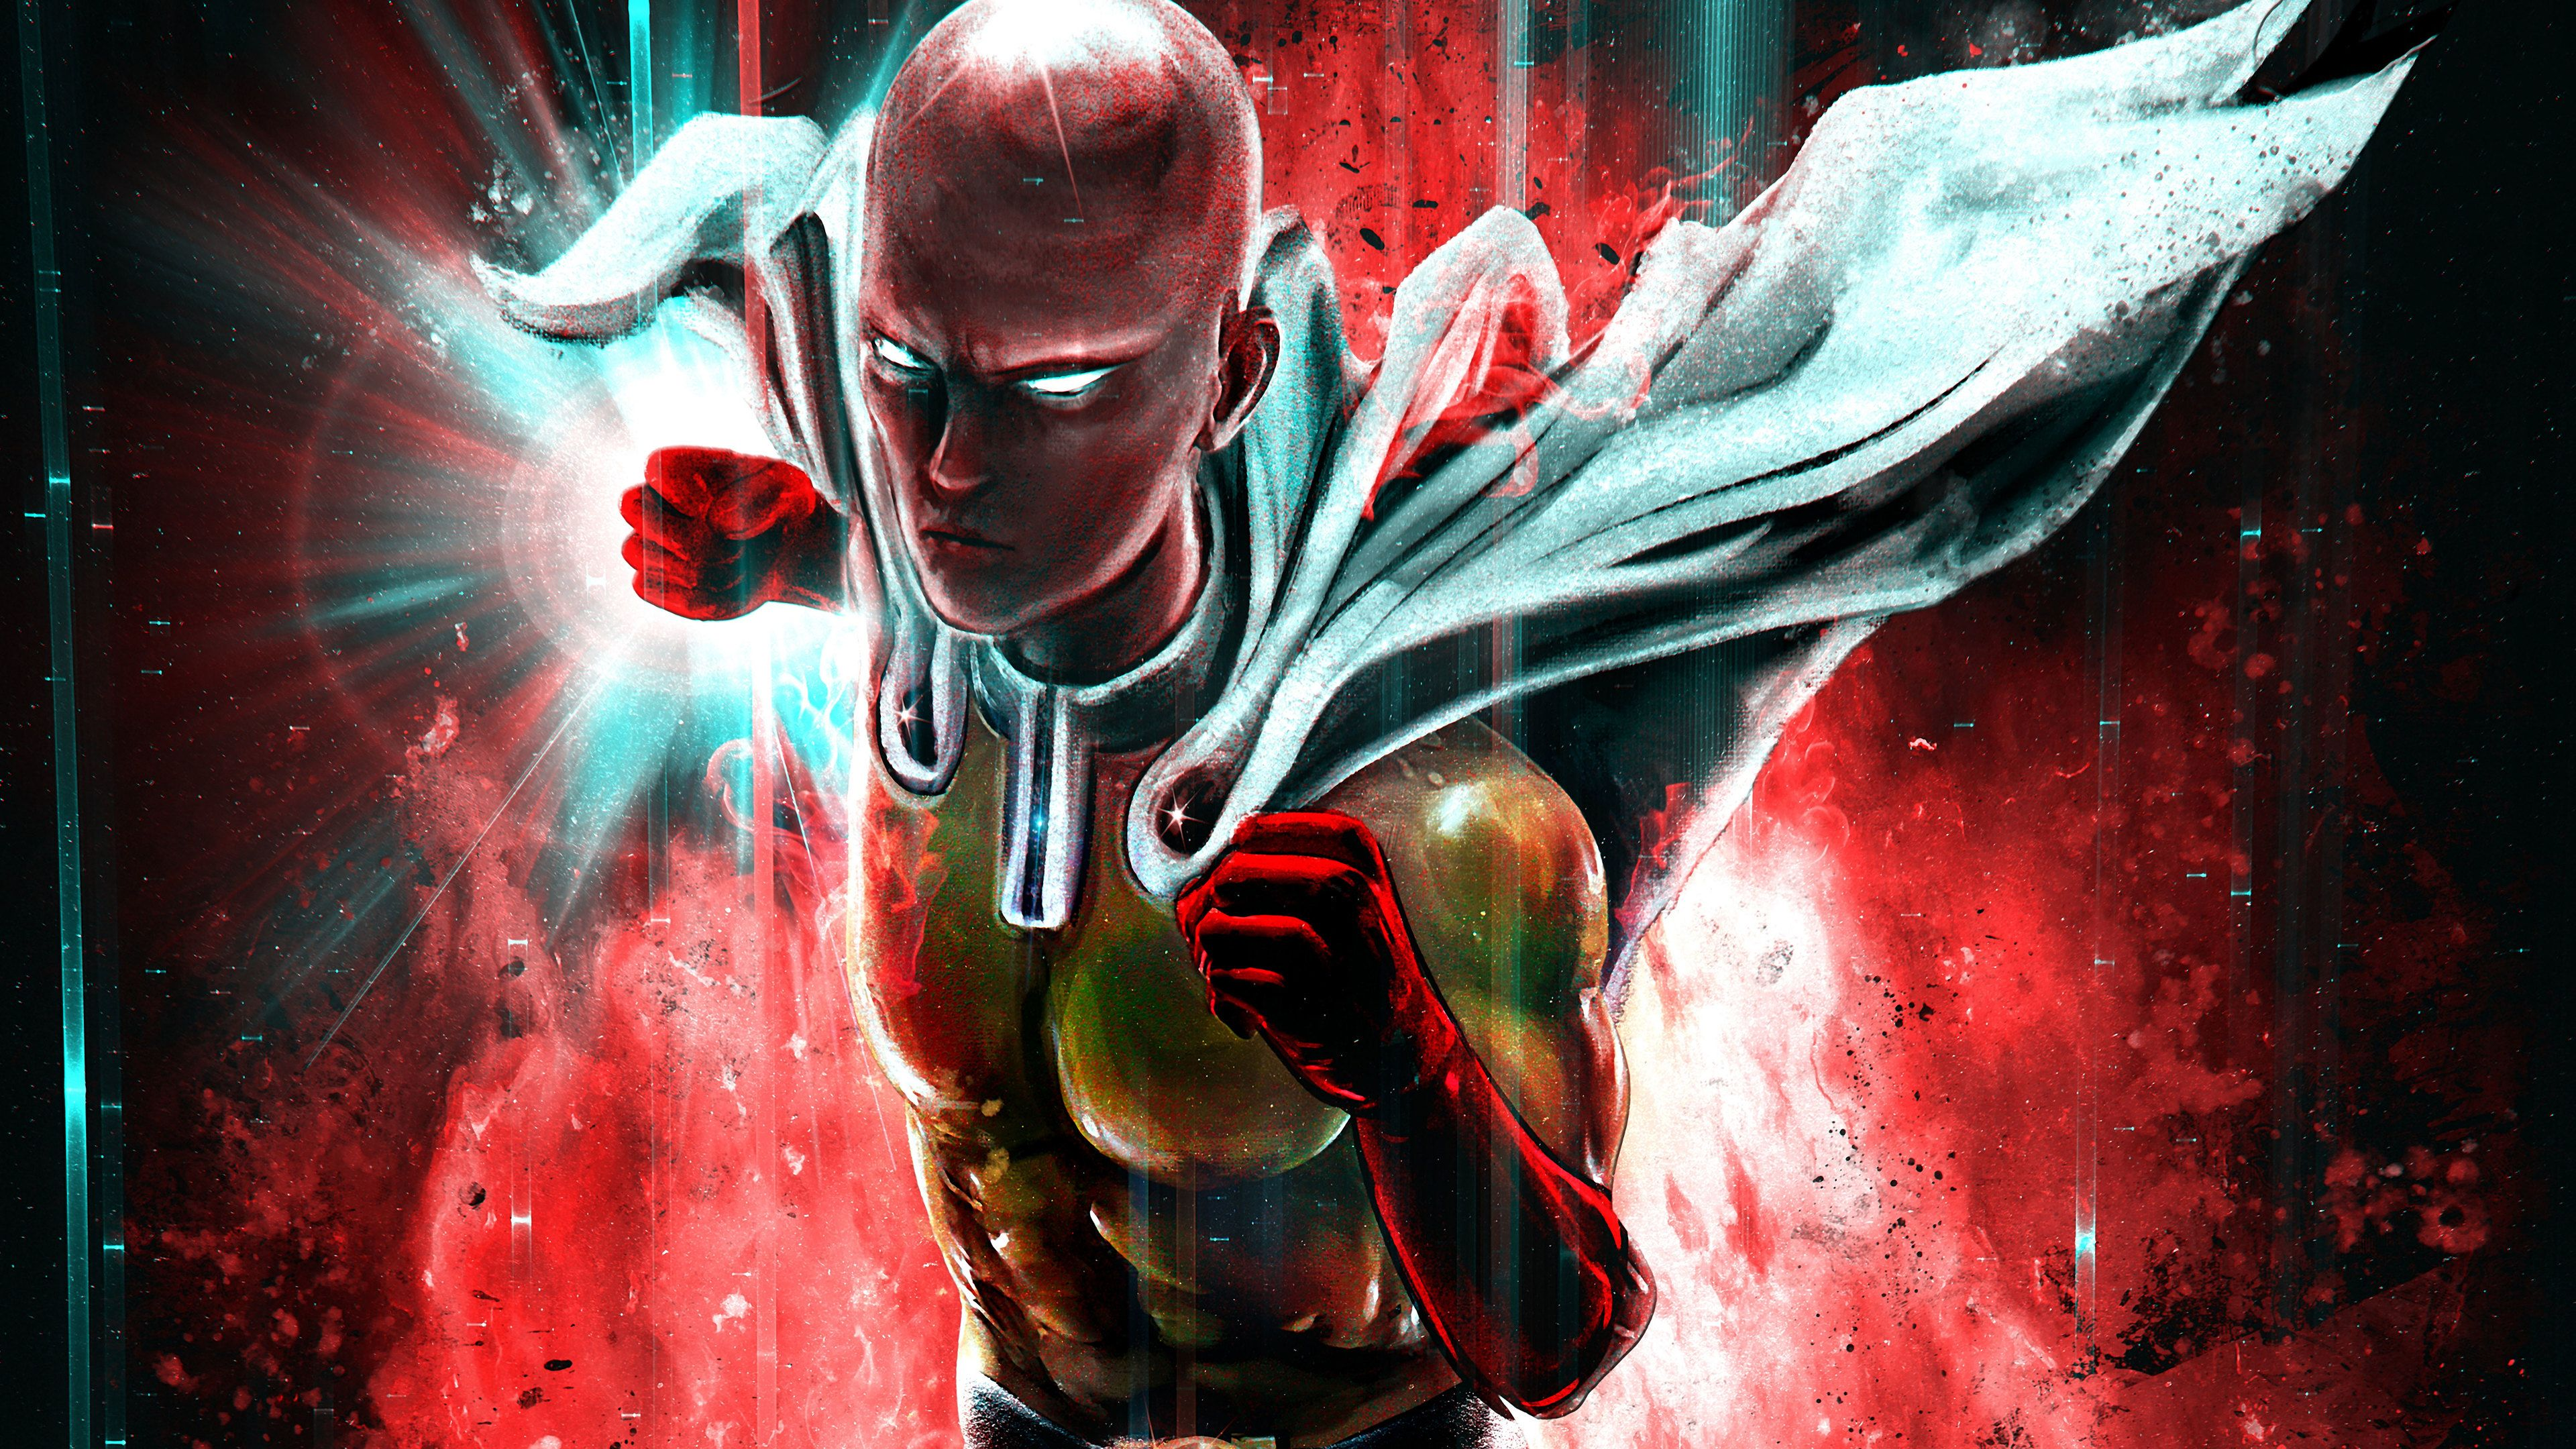 Wallpaper 4k One Punch Man 4k 4k Wallpapers Anime Wallpapers